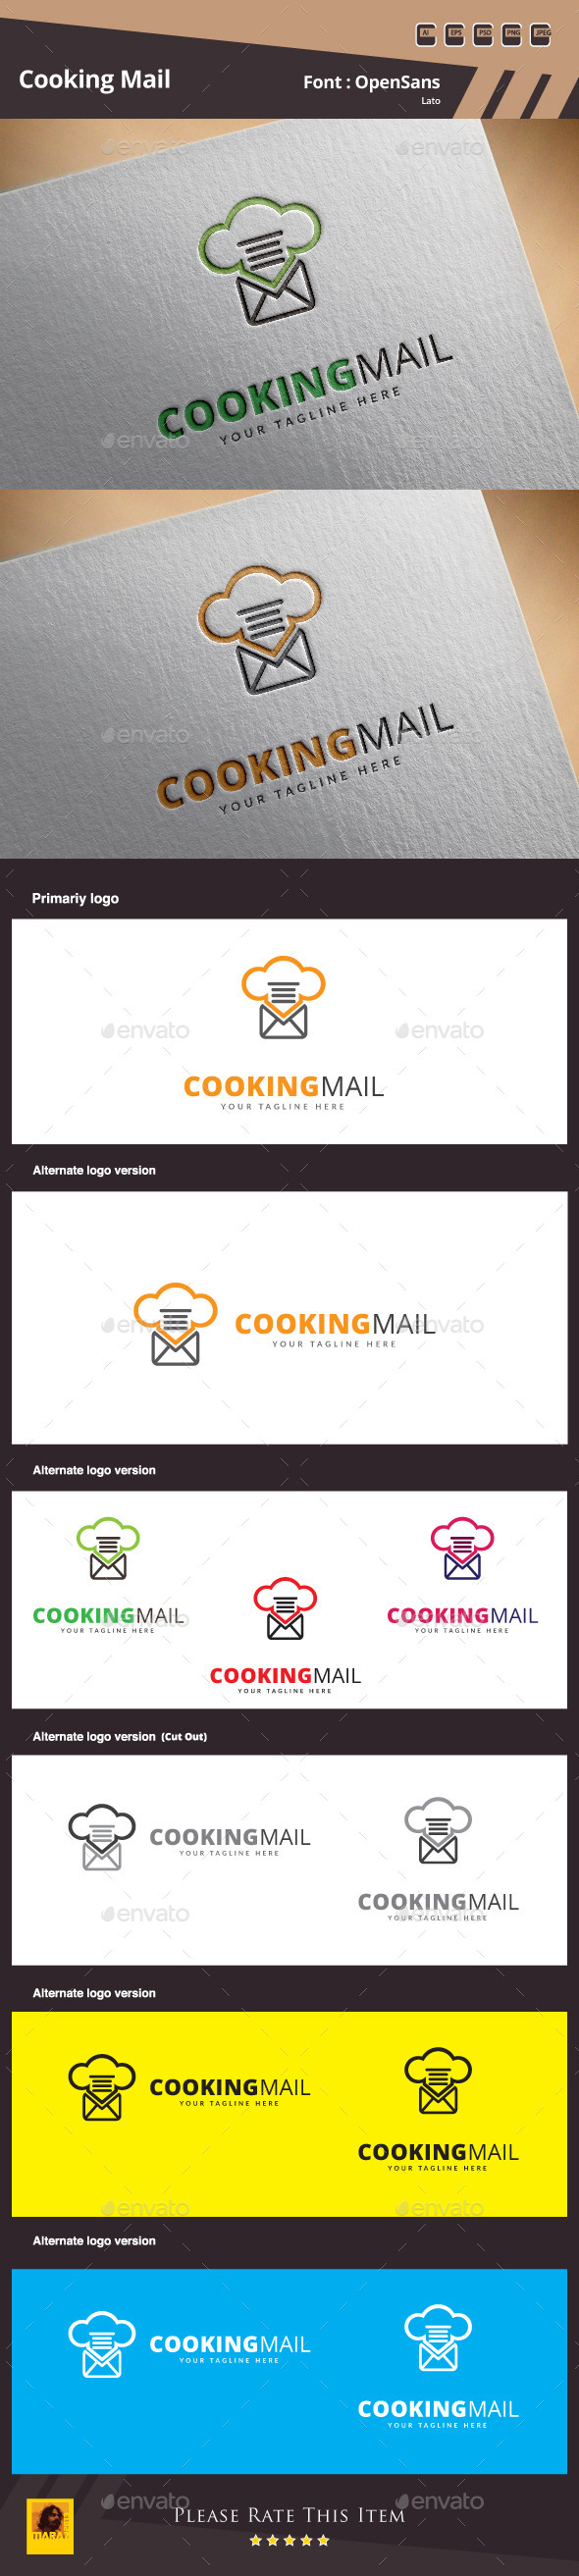 GraphicRiver Cooking MailLogo Template 10357655